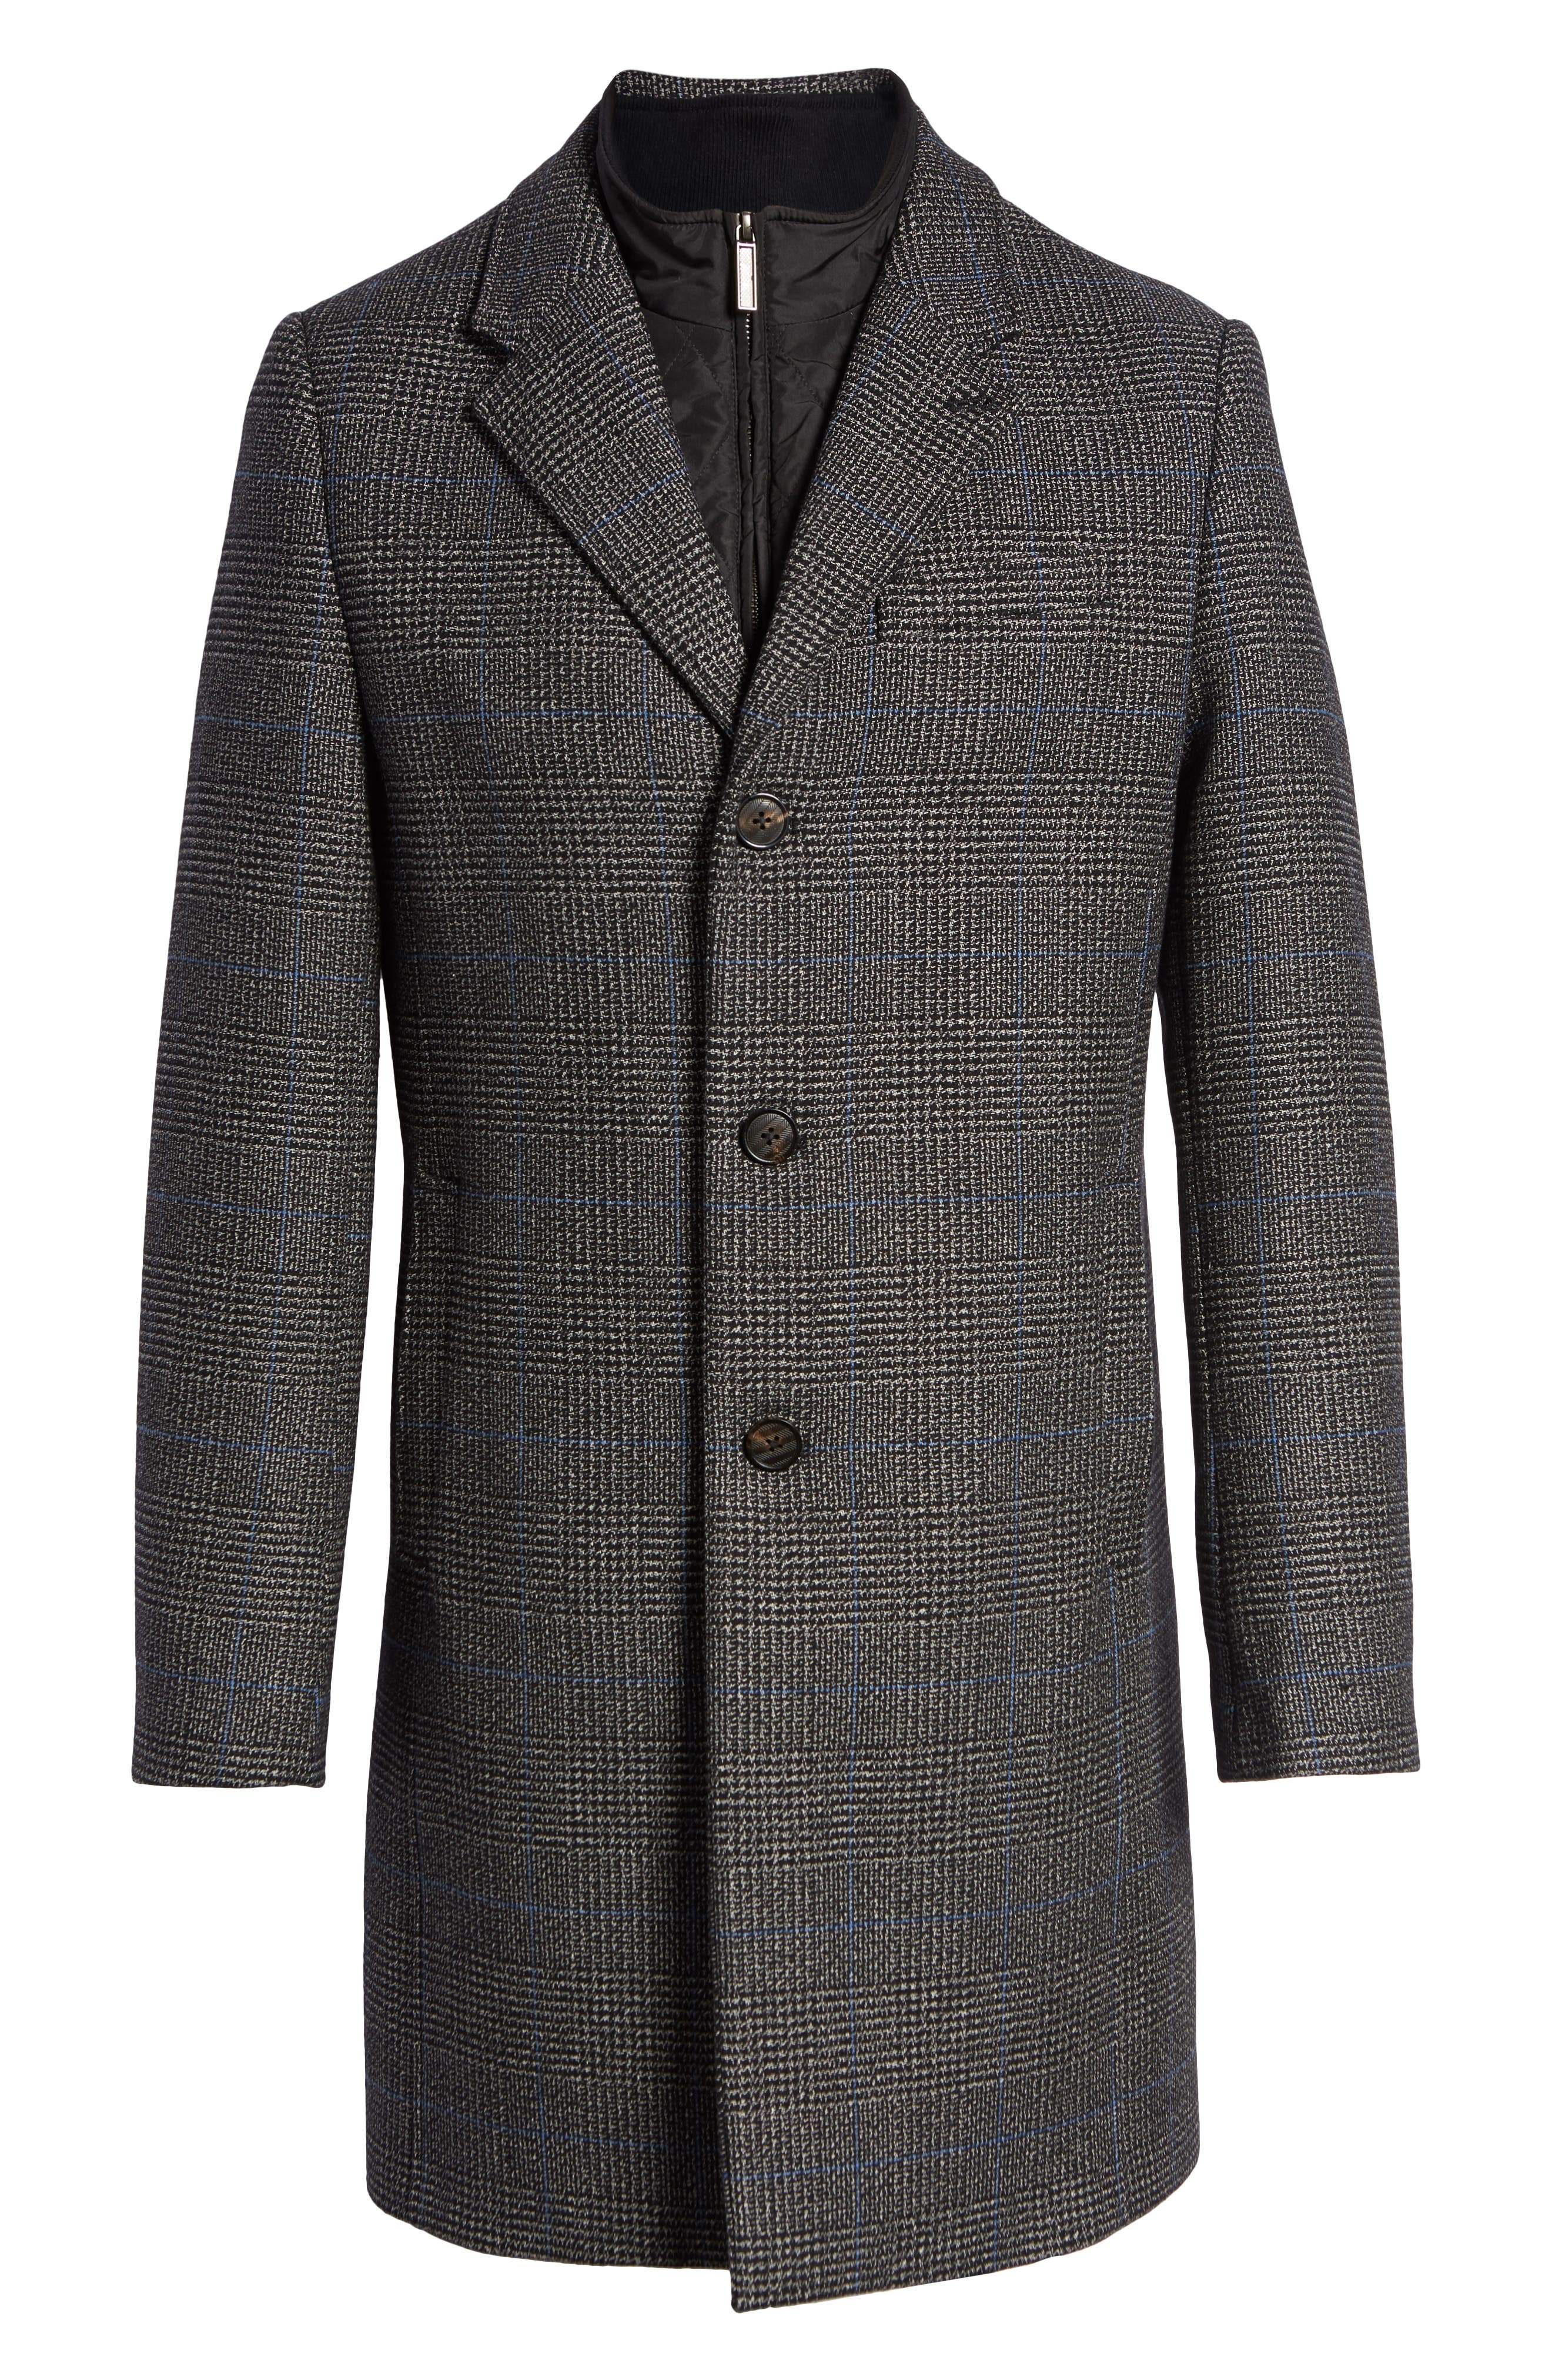 Plaid Stretch Wool & Cotton Overcoat,                             Alternate thumbnail 5, color,                             CHARCOAL